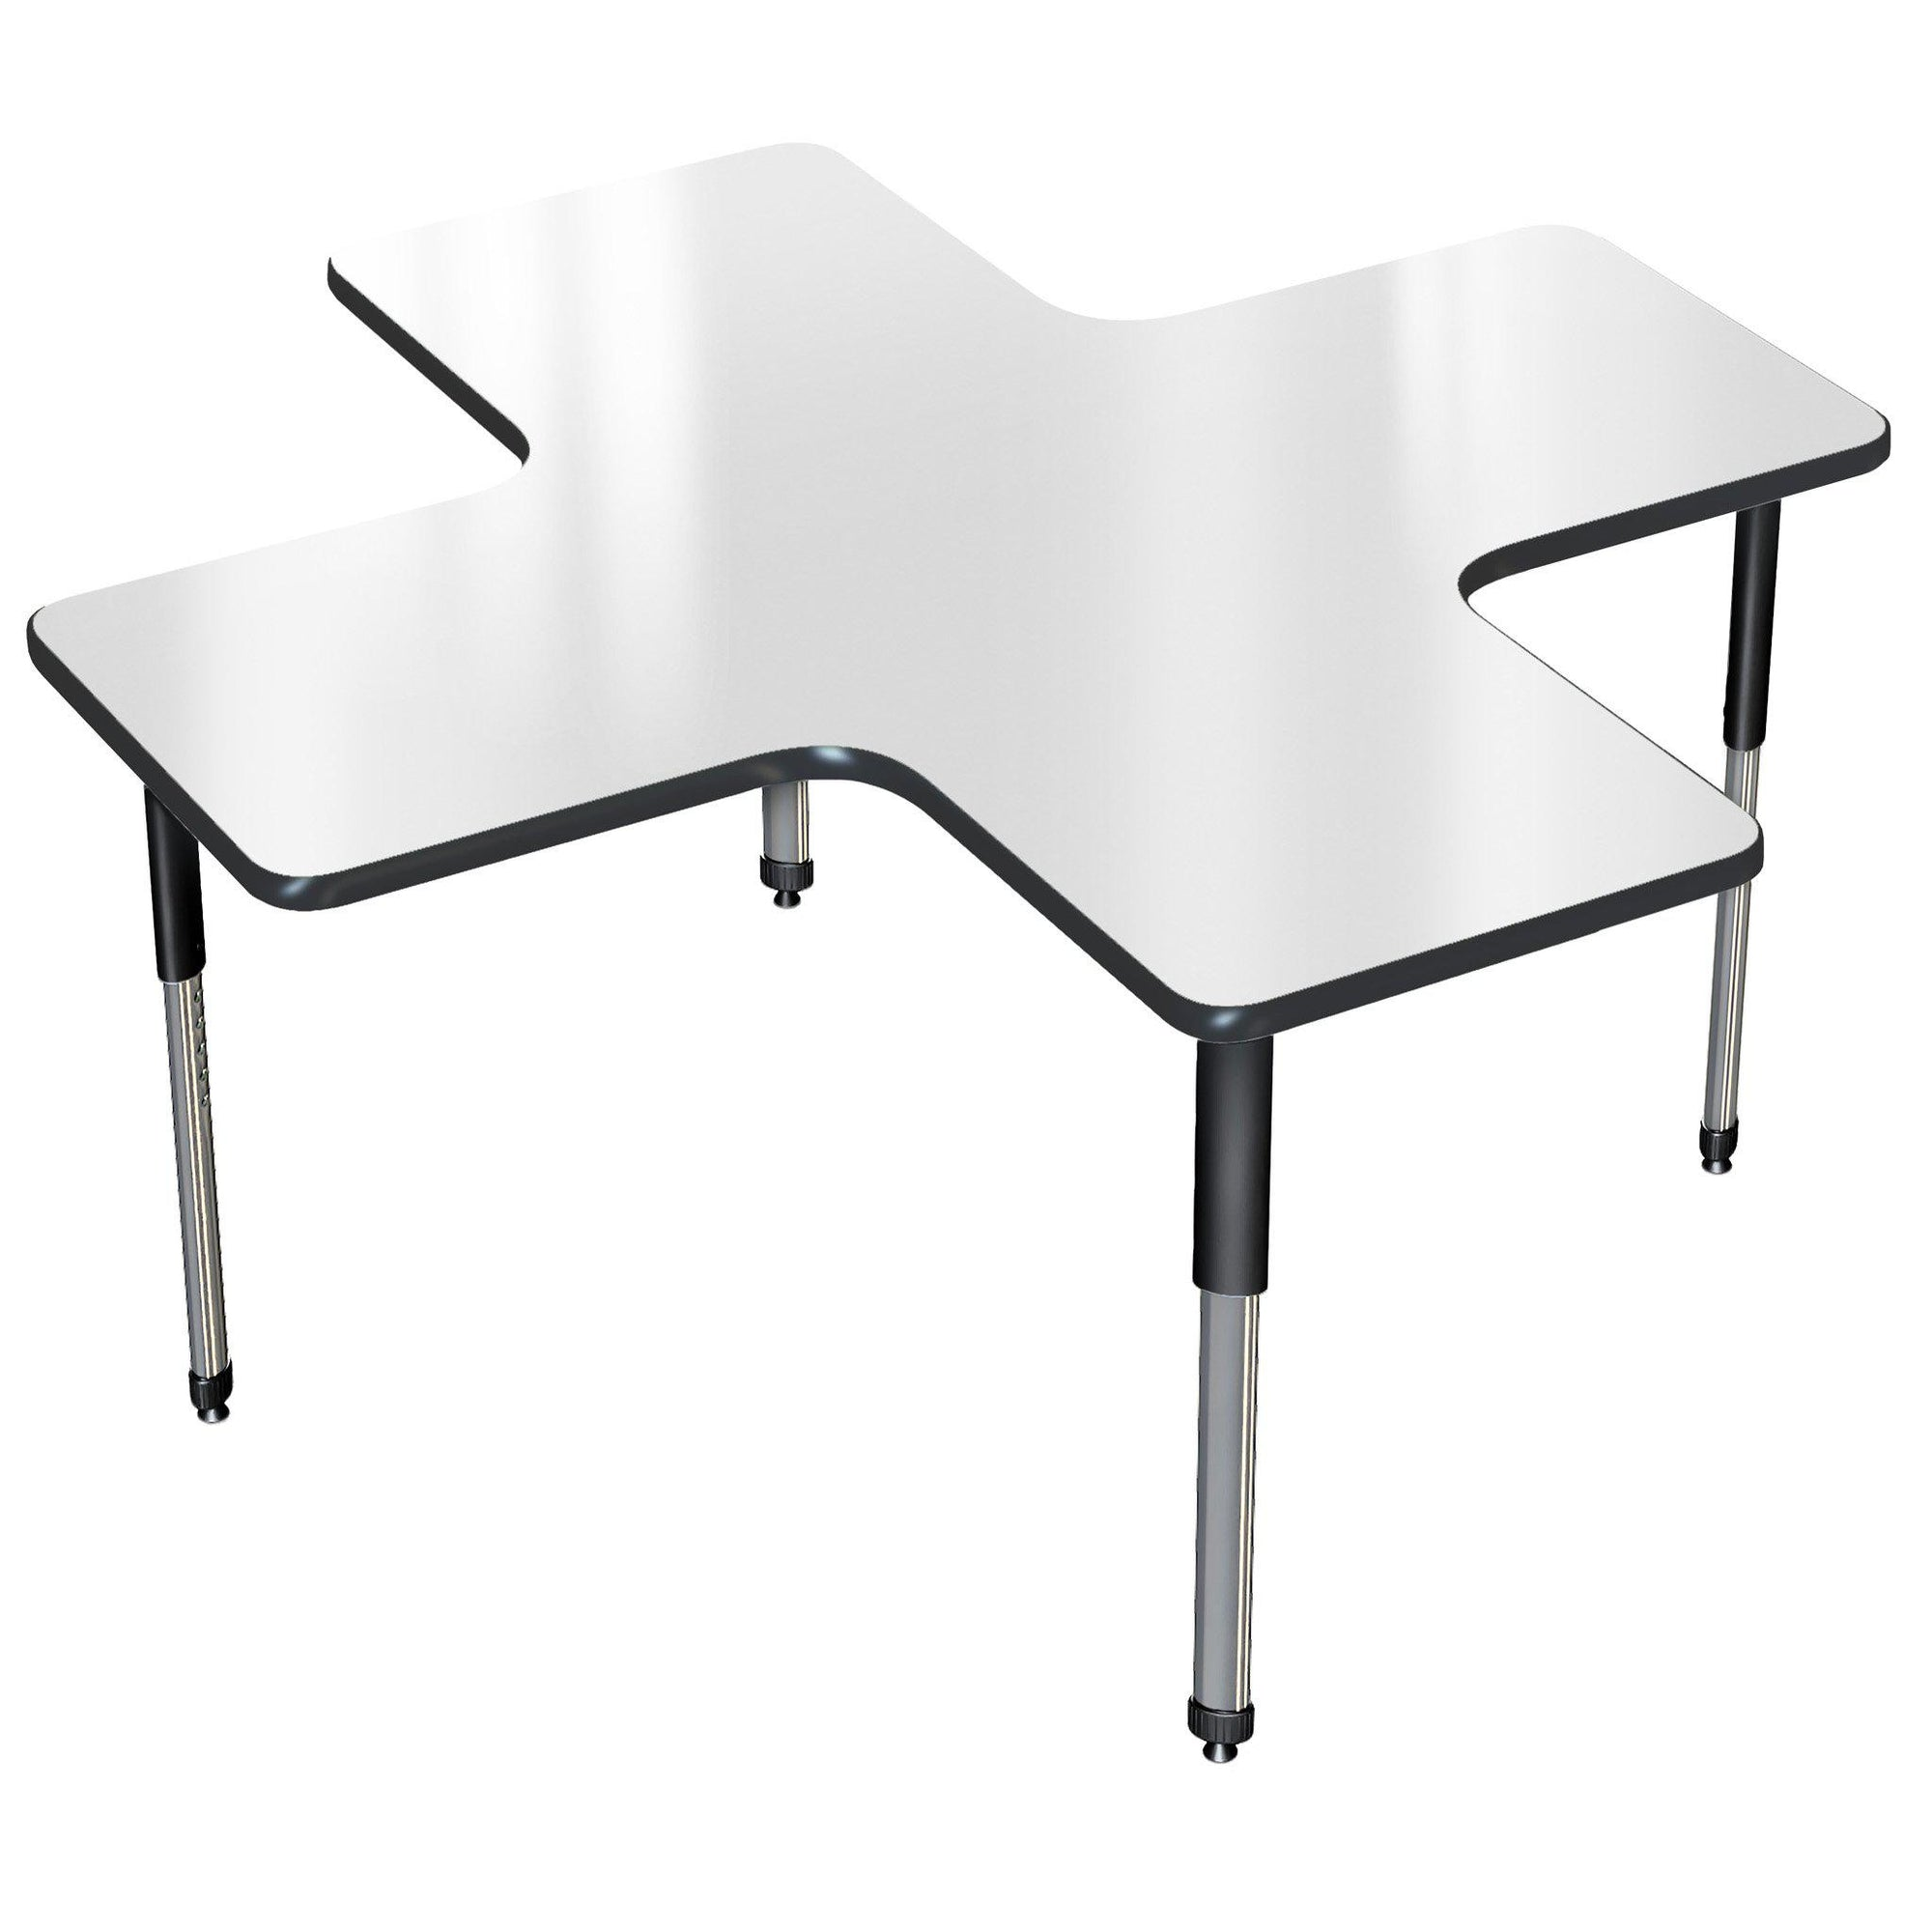 "Aero Dry Erase Activity Table, 60"" x 60"" A+, Oval Adjustable Height Legs"